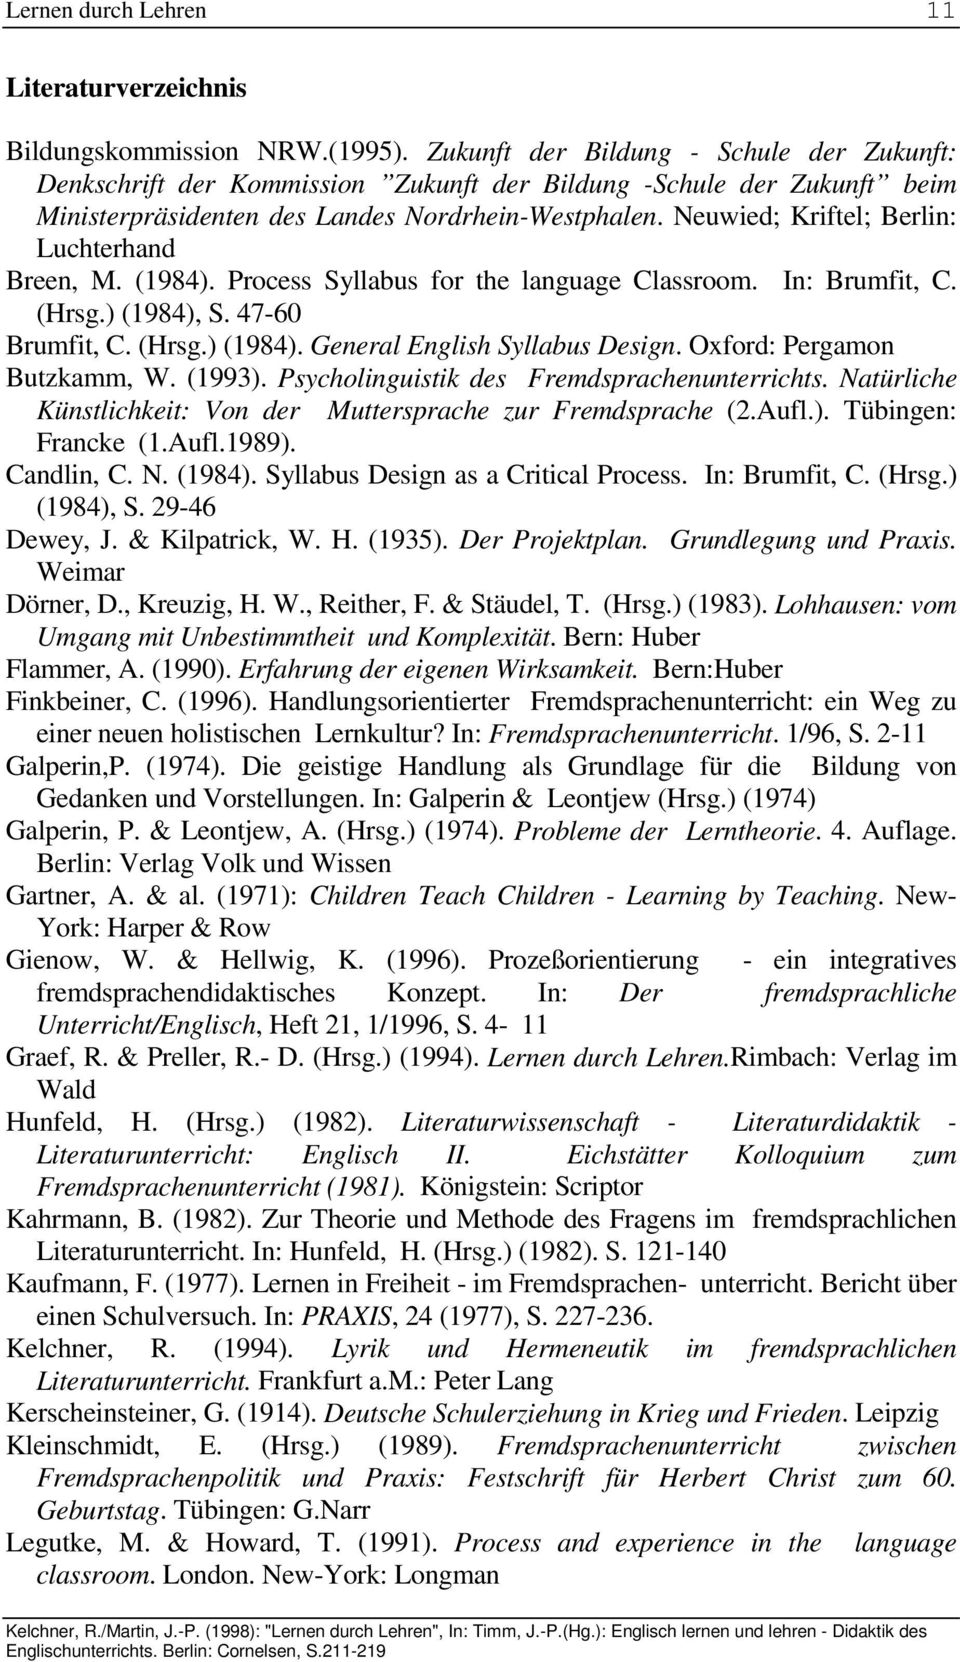 Neuwied; Kriftel; Berlin: Luchterhand Breen, M. (1984). Process Syllabus for the language Classroom. In: Brumfit, C. (Hrsg.) (1984), S. 47-60 Brumfit, C. (Hrsg.) (1984). General English Syllabus Design.